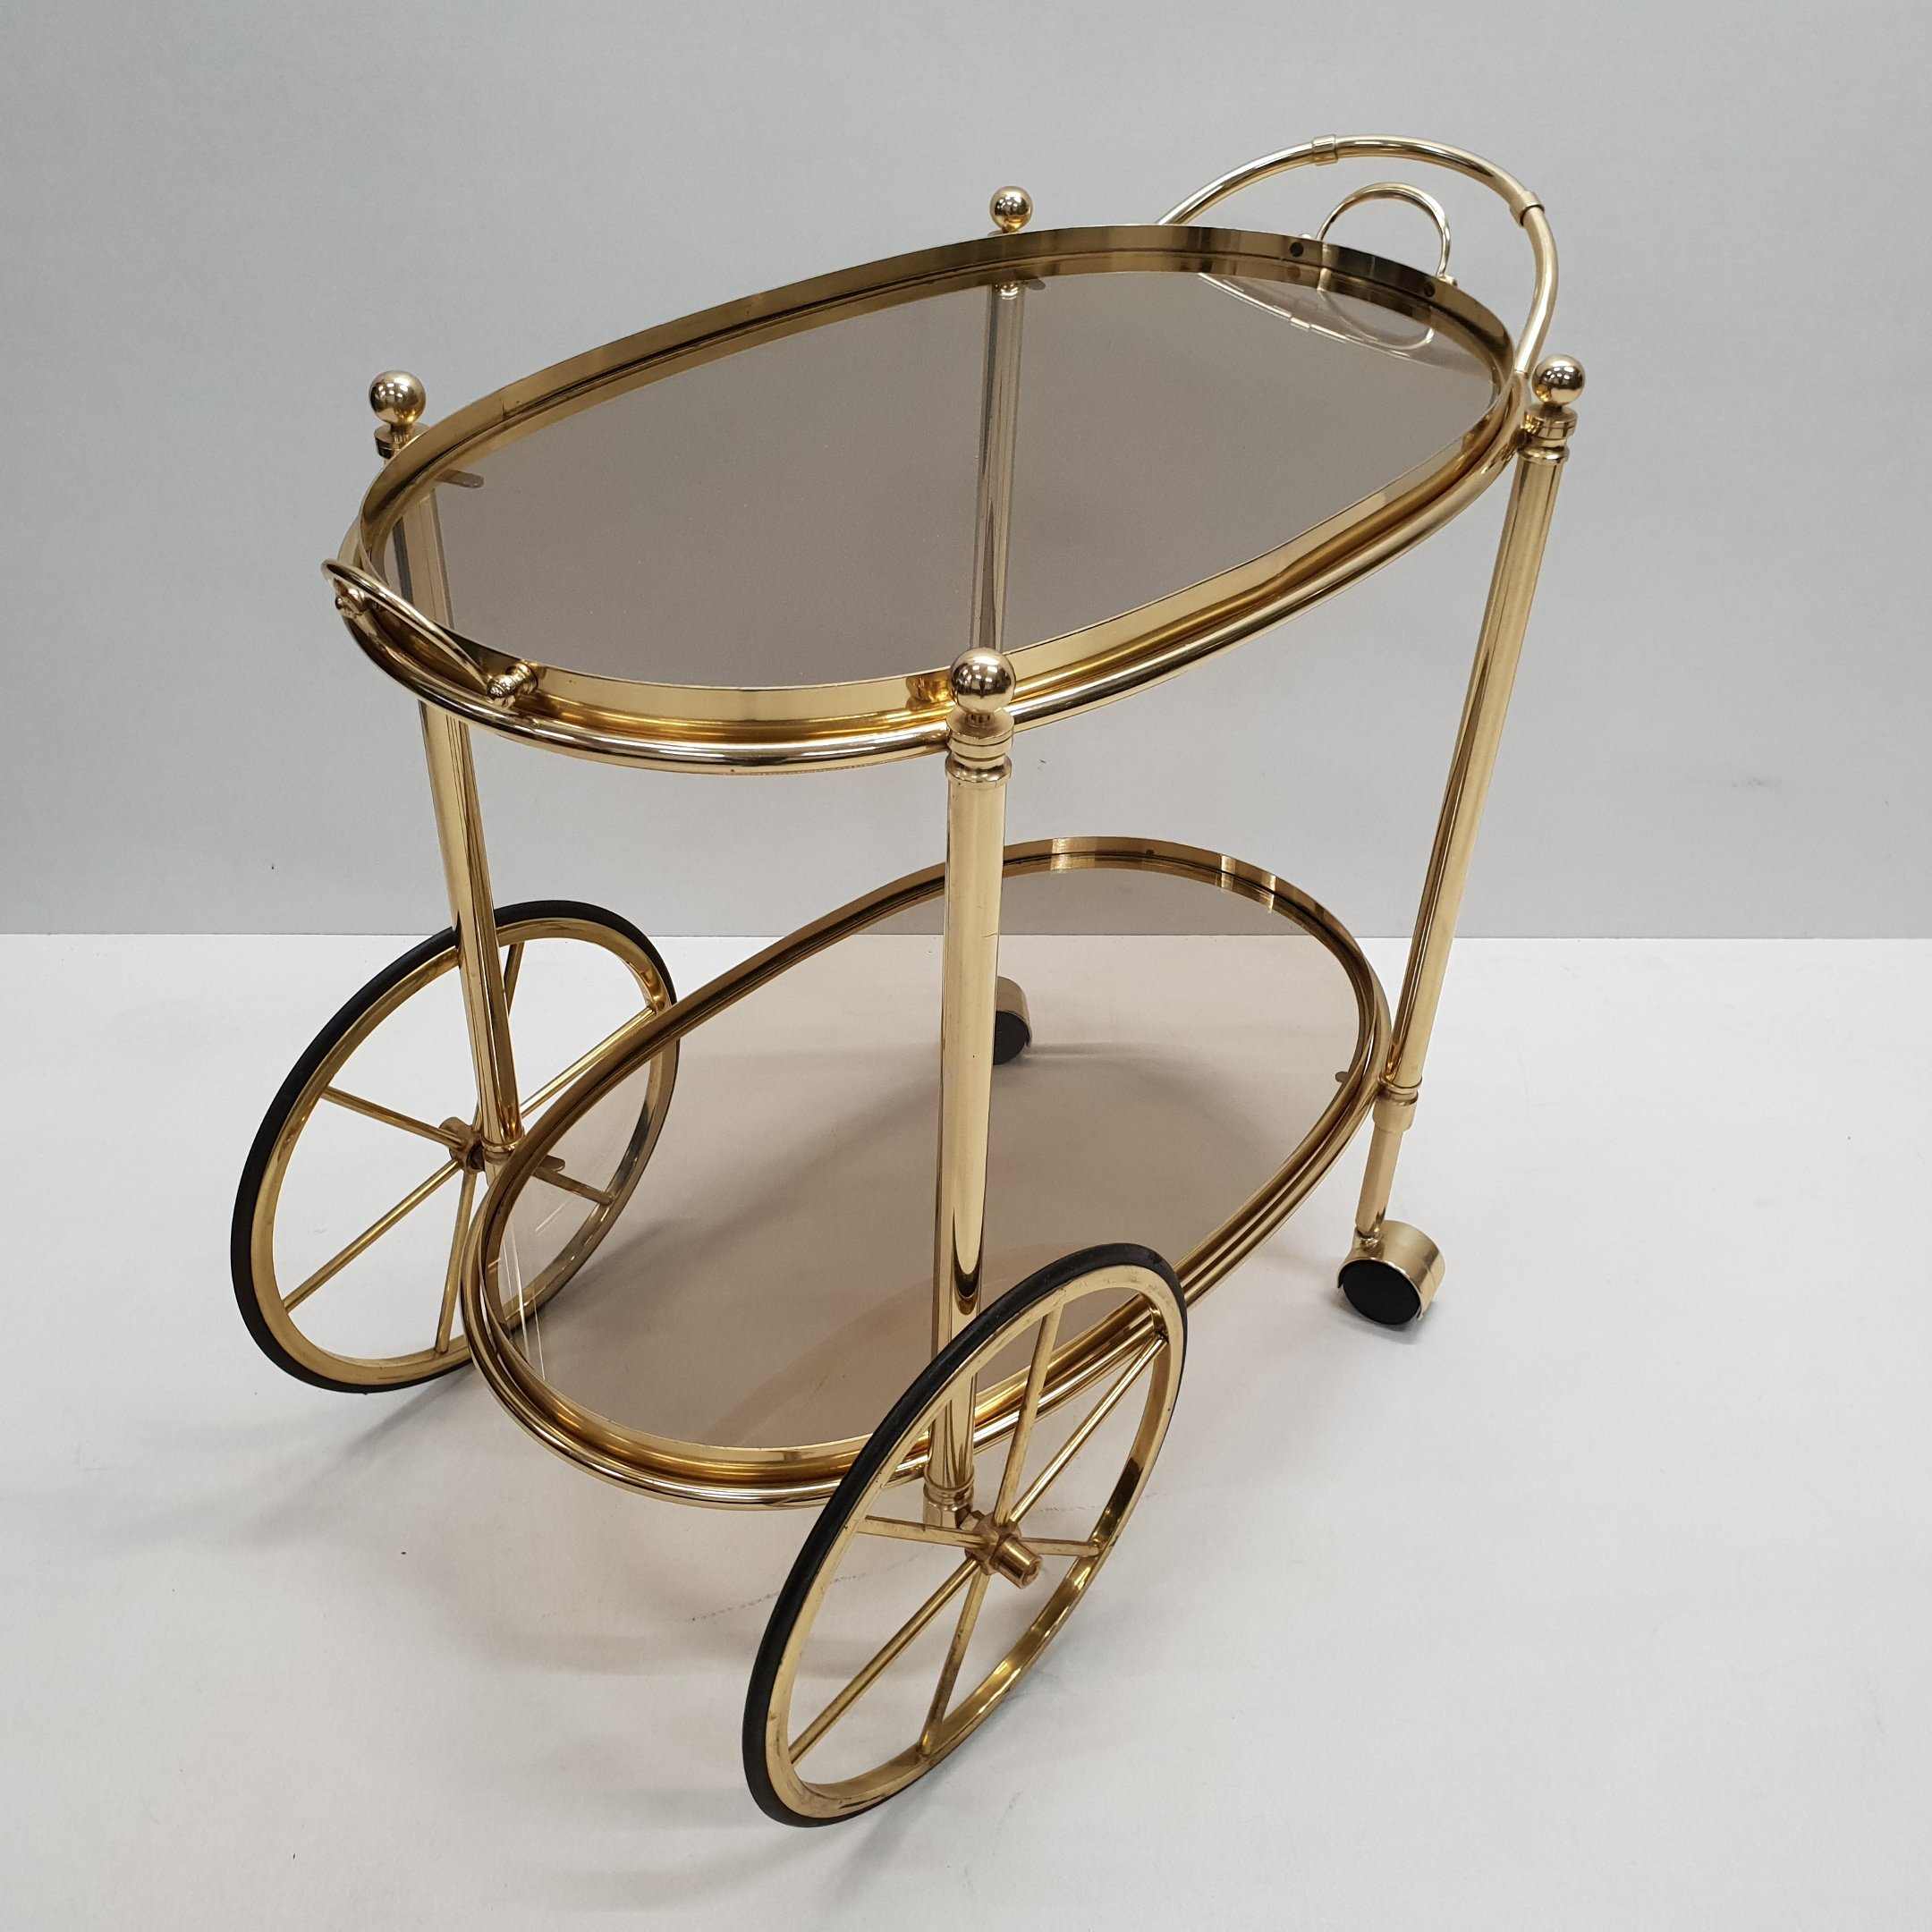 High Quality Italian Brass Trolley Bar Cart With Smoked Glass 92364